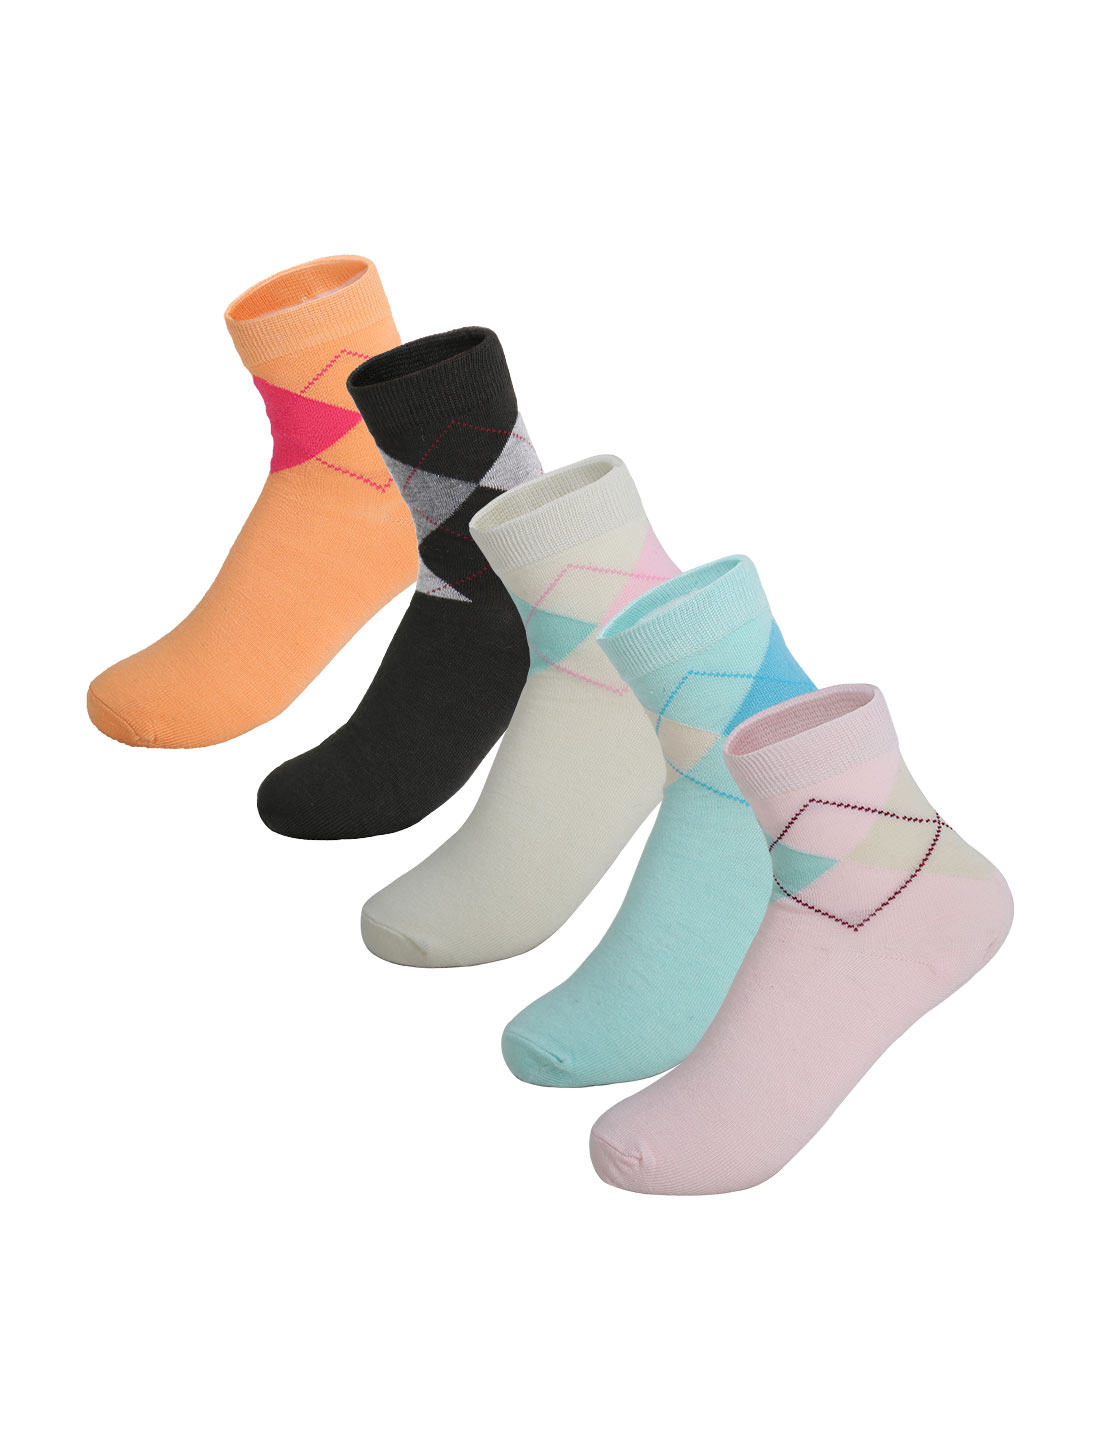 Women 5 Pack Ankle Length Elastic Cuff Argyle Socks Assorted 9-11